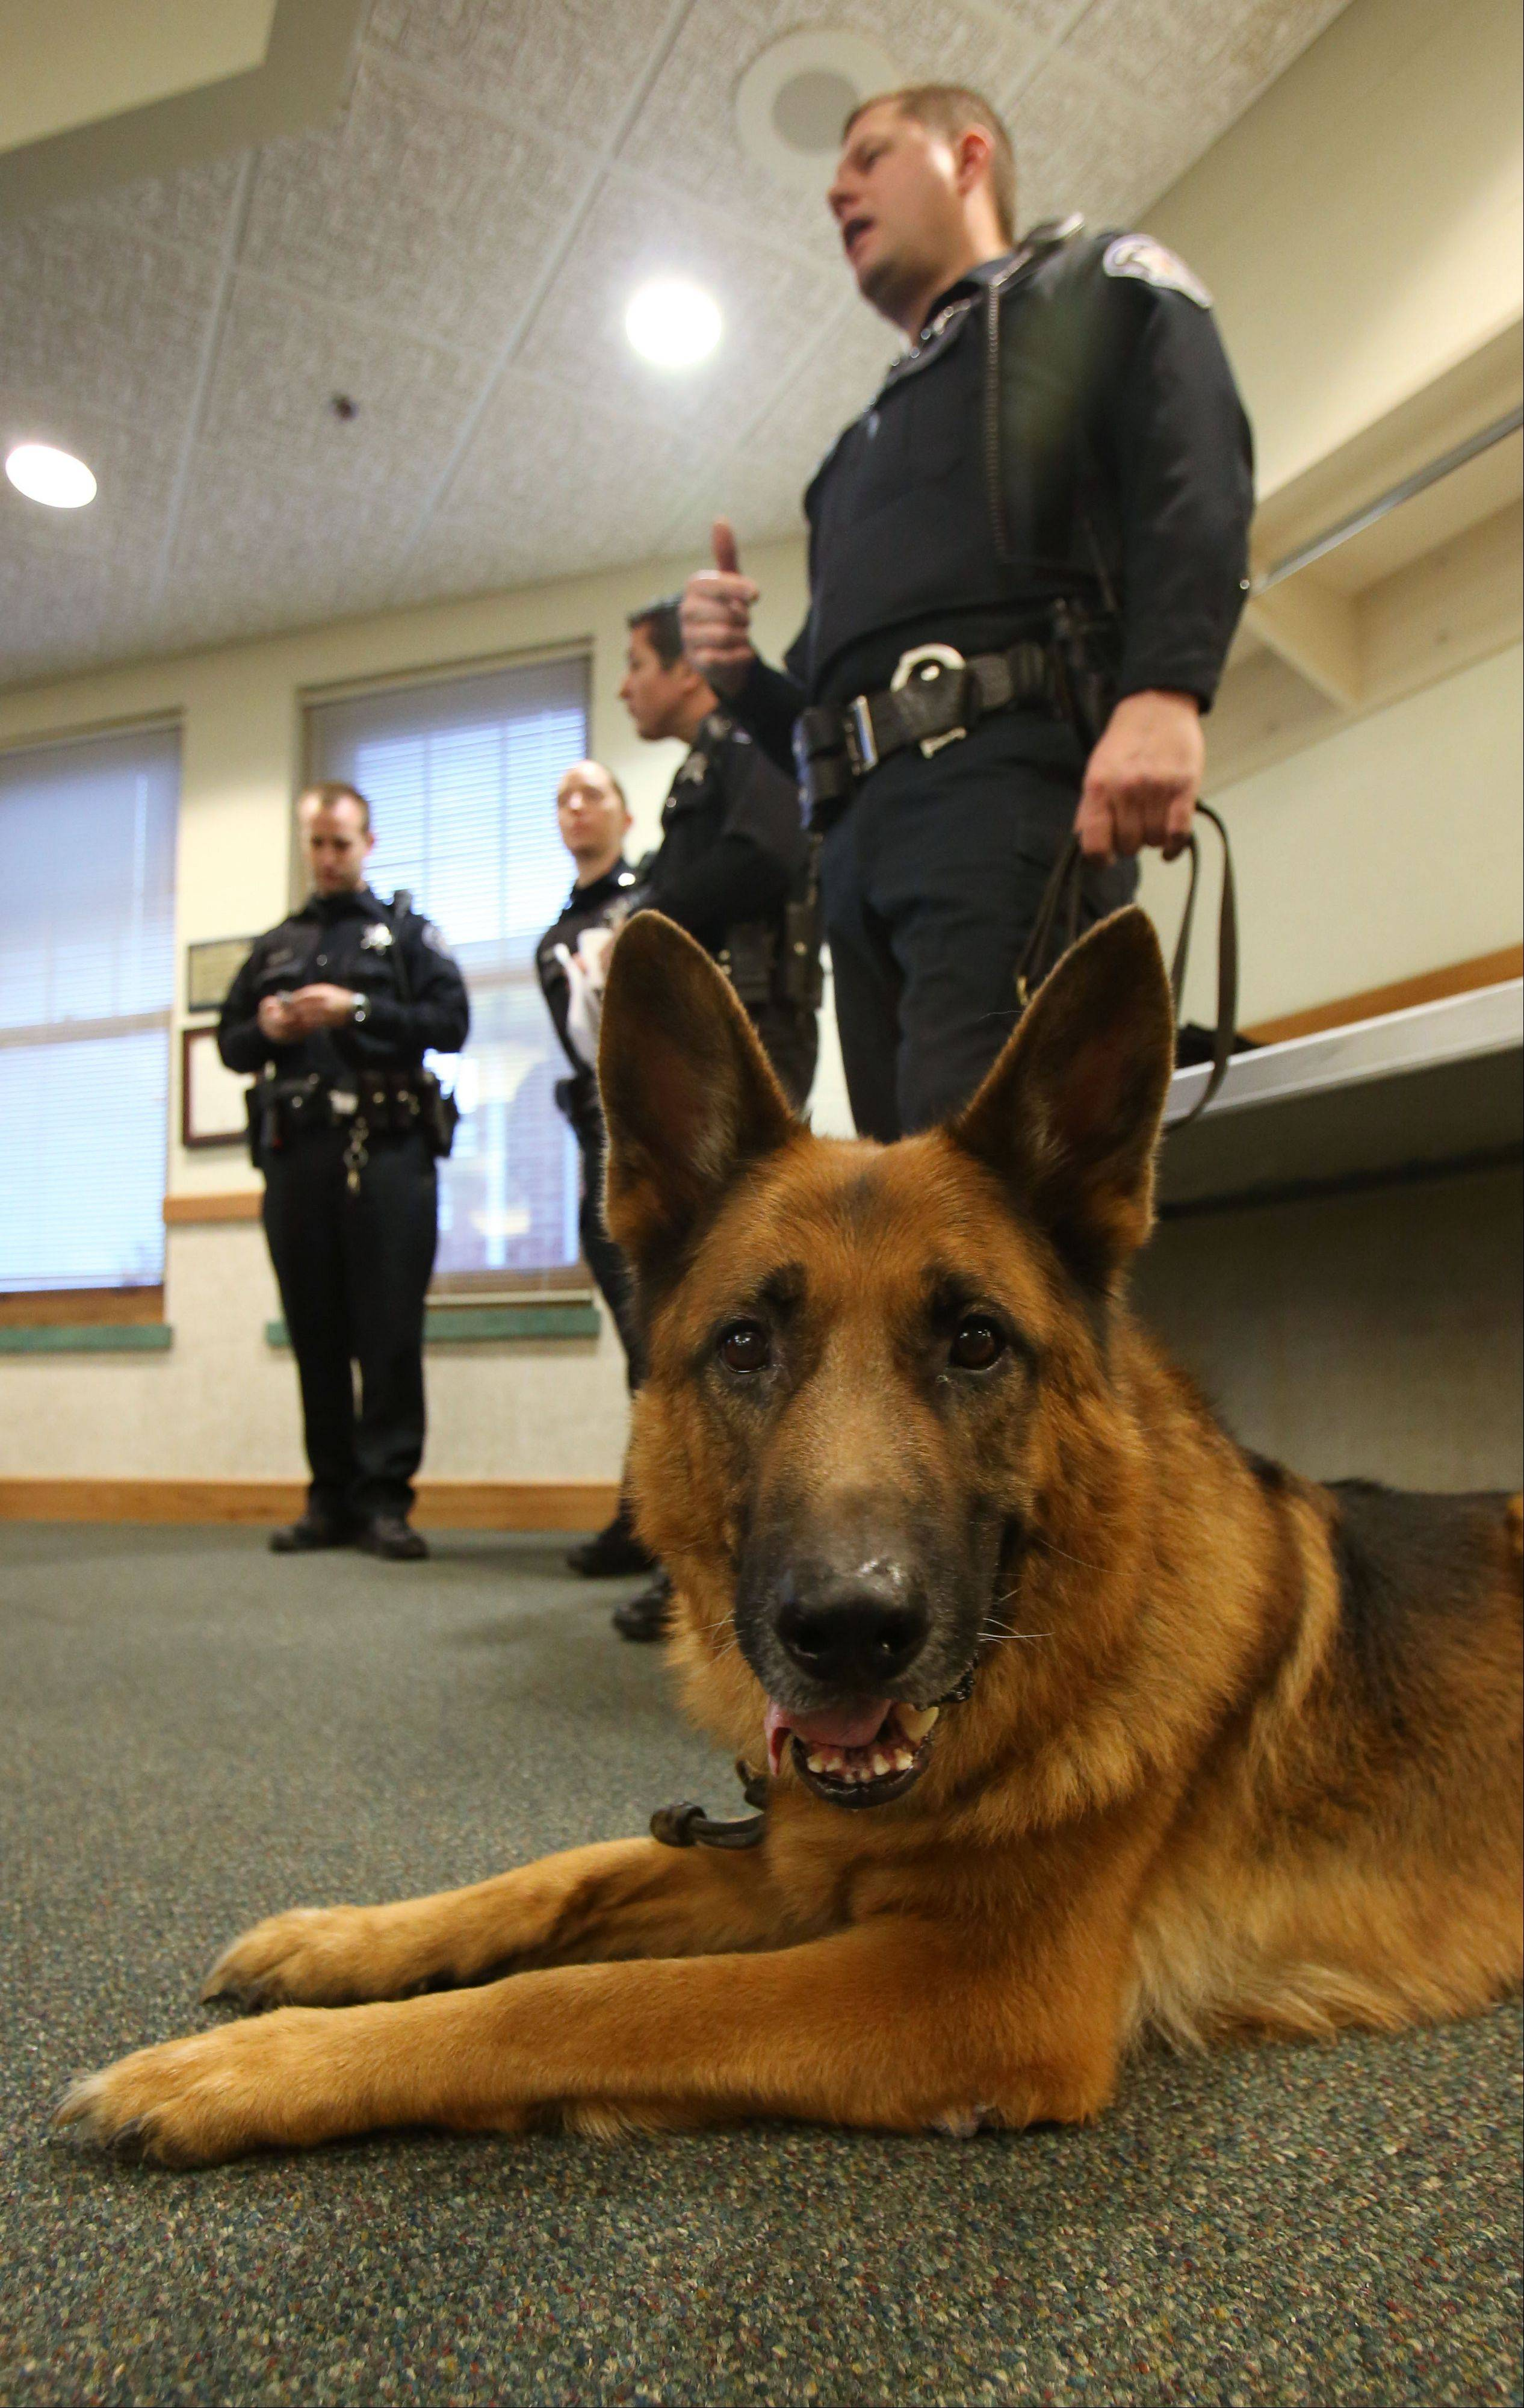 The Village of Round Lake Beach retired K-9 Gunnar from the police department Monday night at village hall. Gunnar has served the village for the last 7 1/2 years, working with handler Officer Ken Rydz. Rydz now takes ownership of Gunnar.